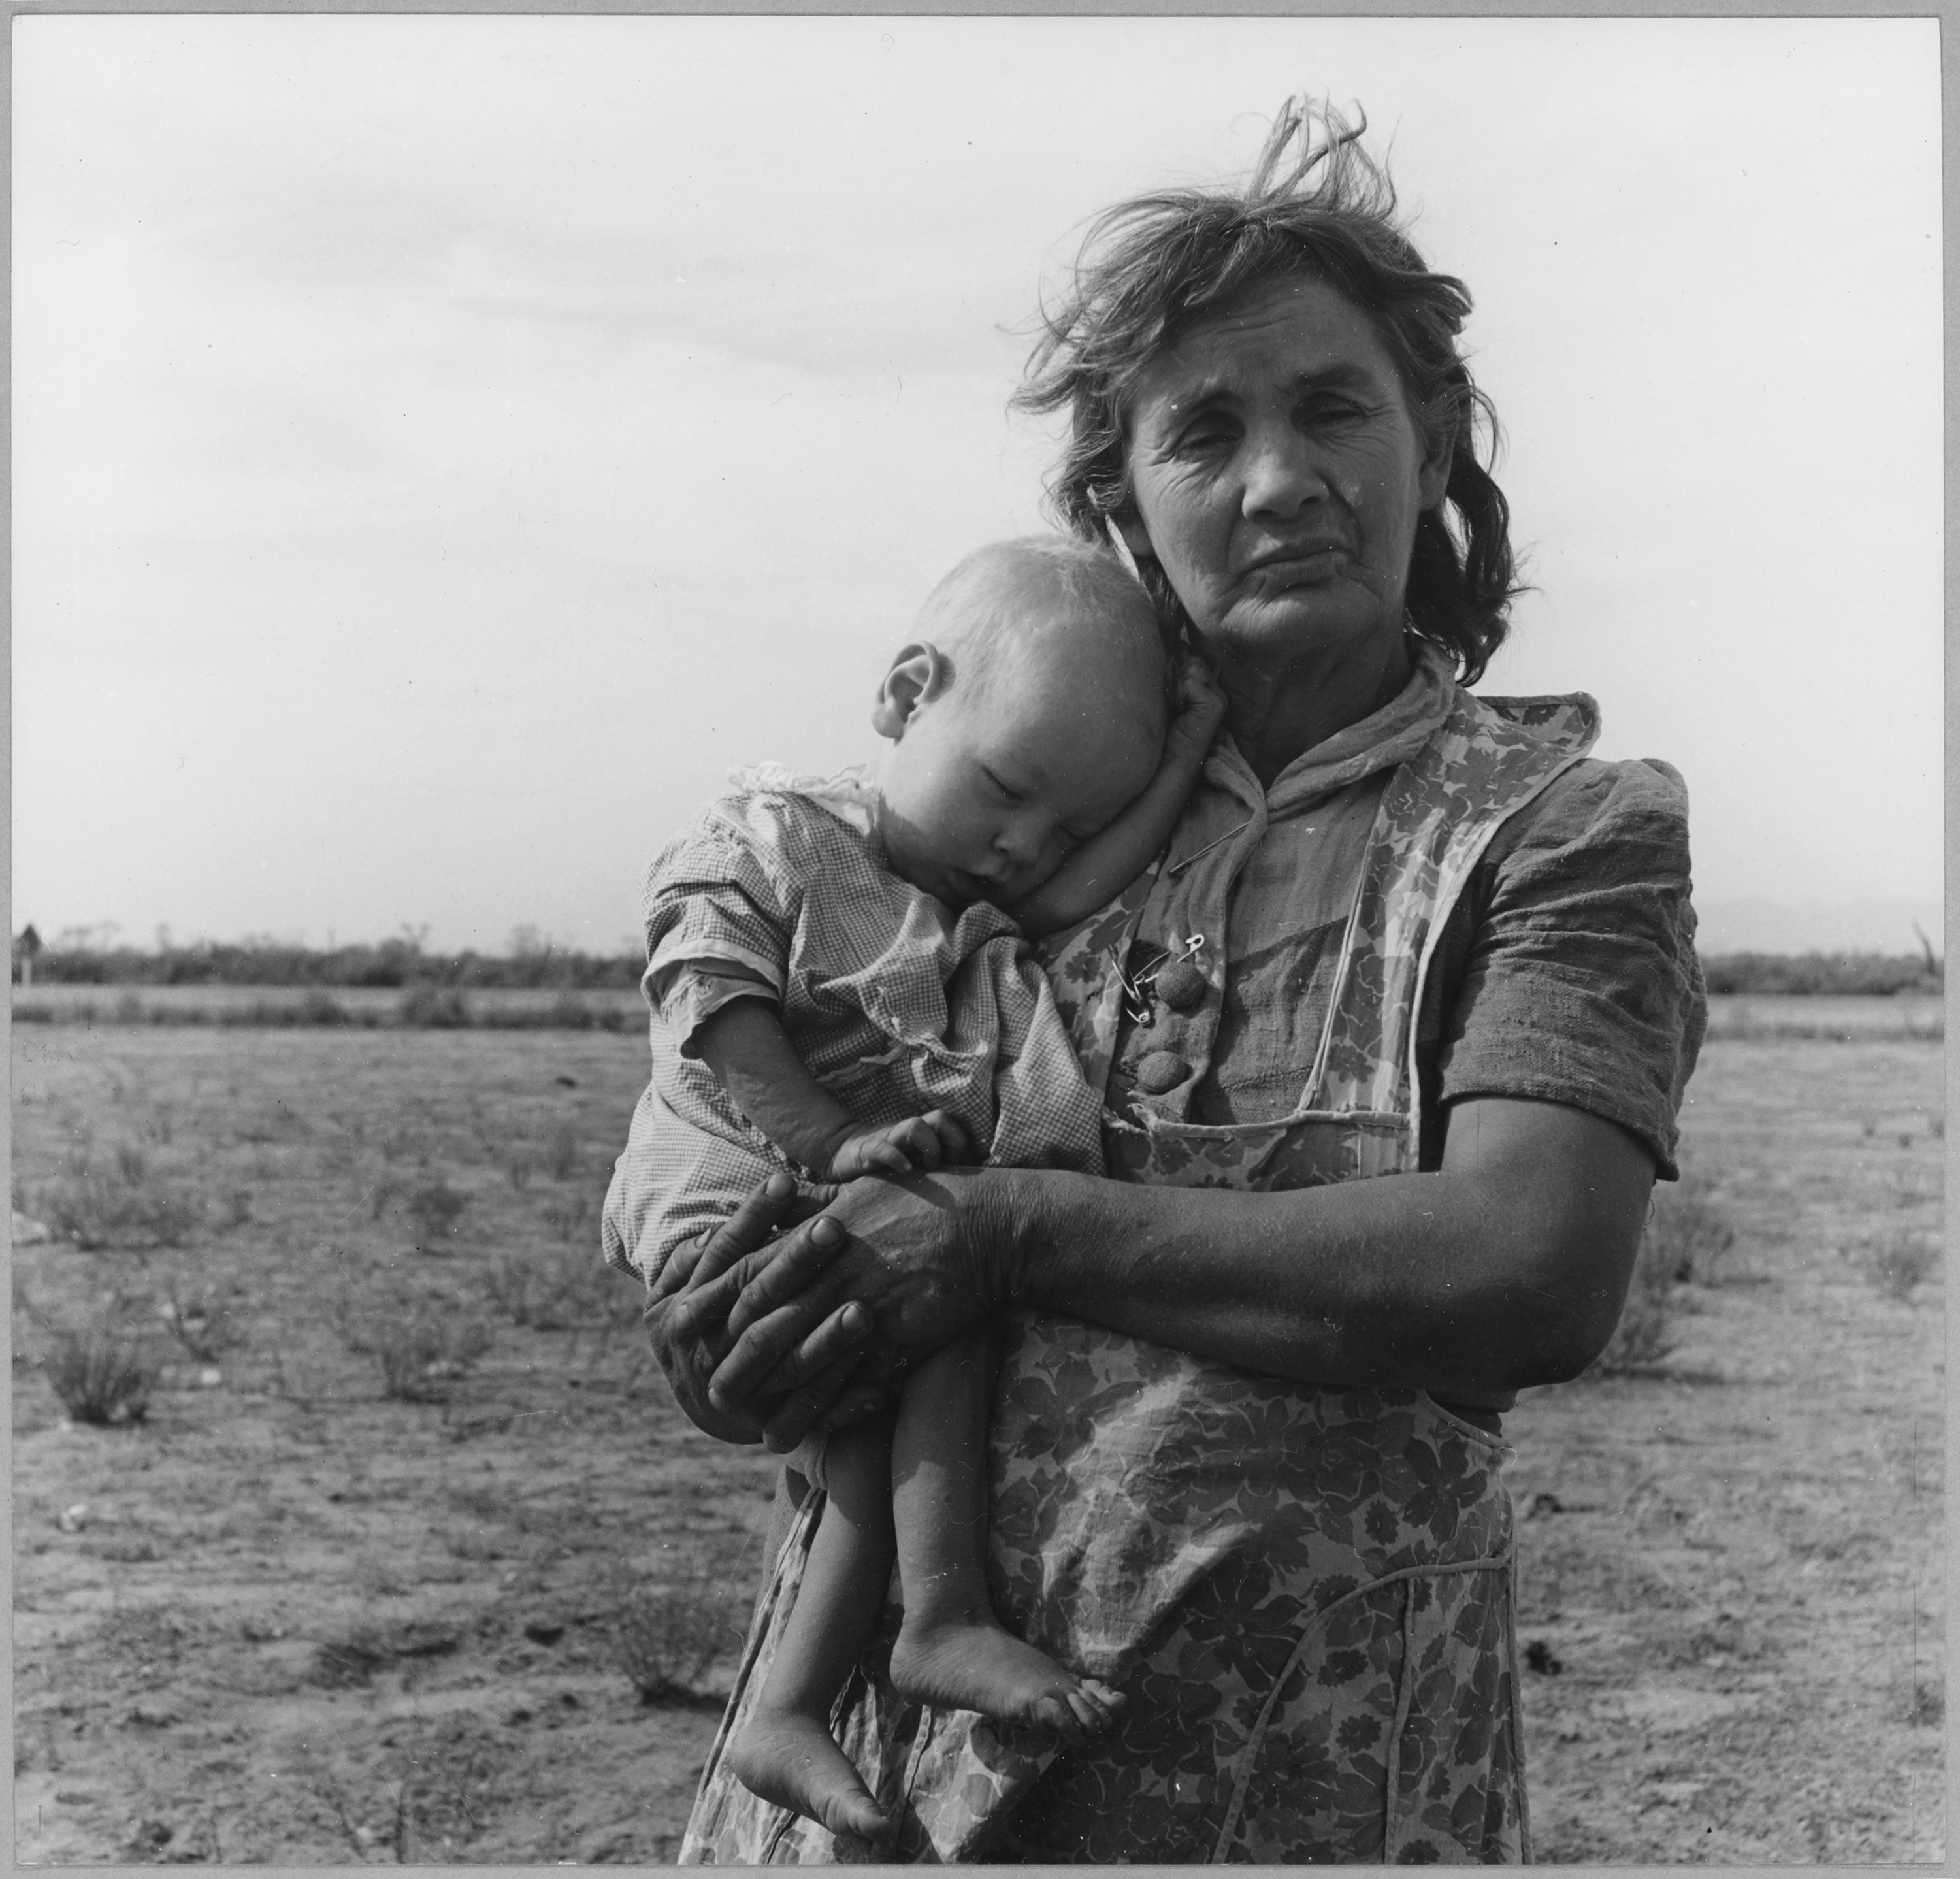 the life and impact of dorothea Lange's life as well as major historical events connected to her work (eg,   students in small groups, ask students to discuss the impact of dorothea  lange's.